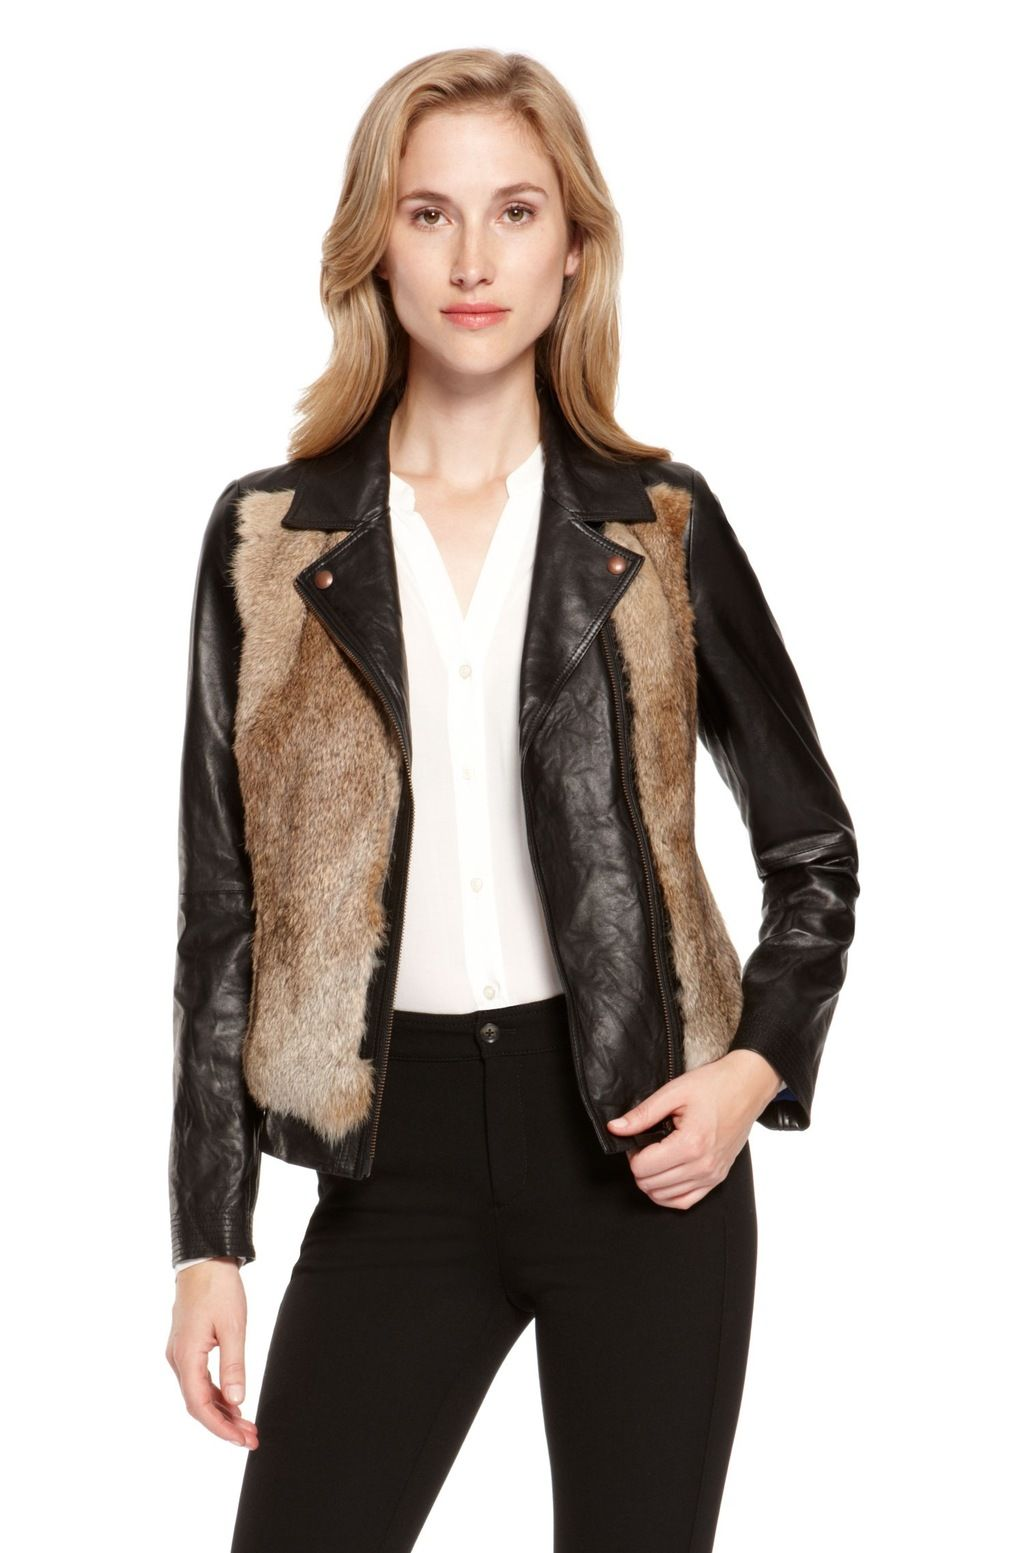 Hugo Boss 'Jaisa' Fur Leather Jacket. Clothing,